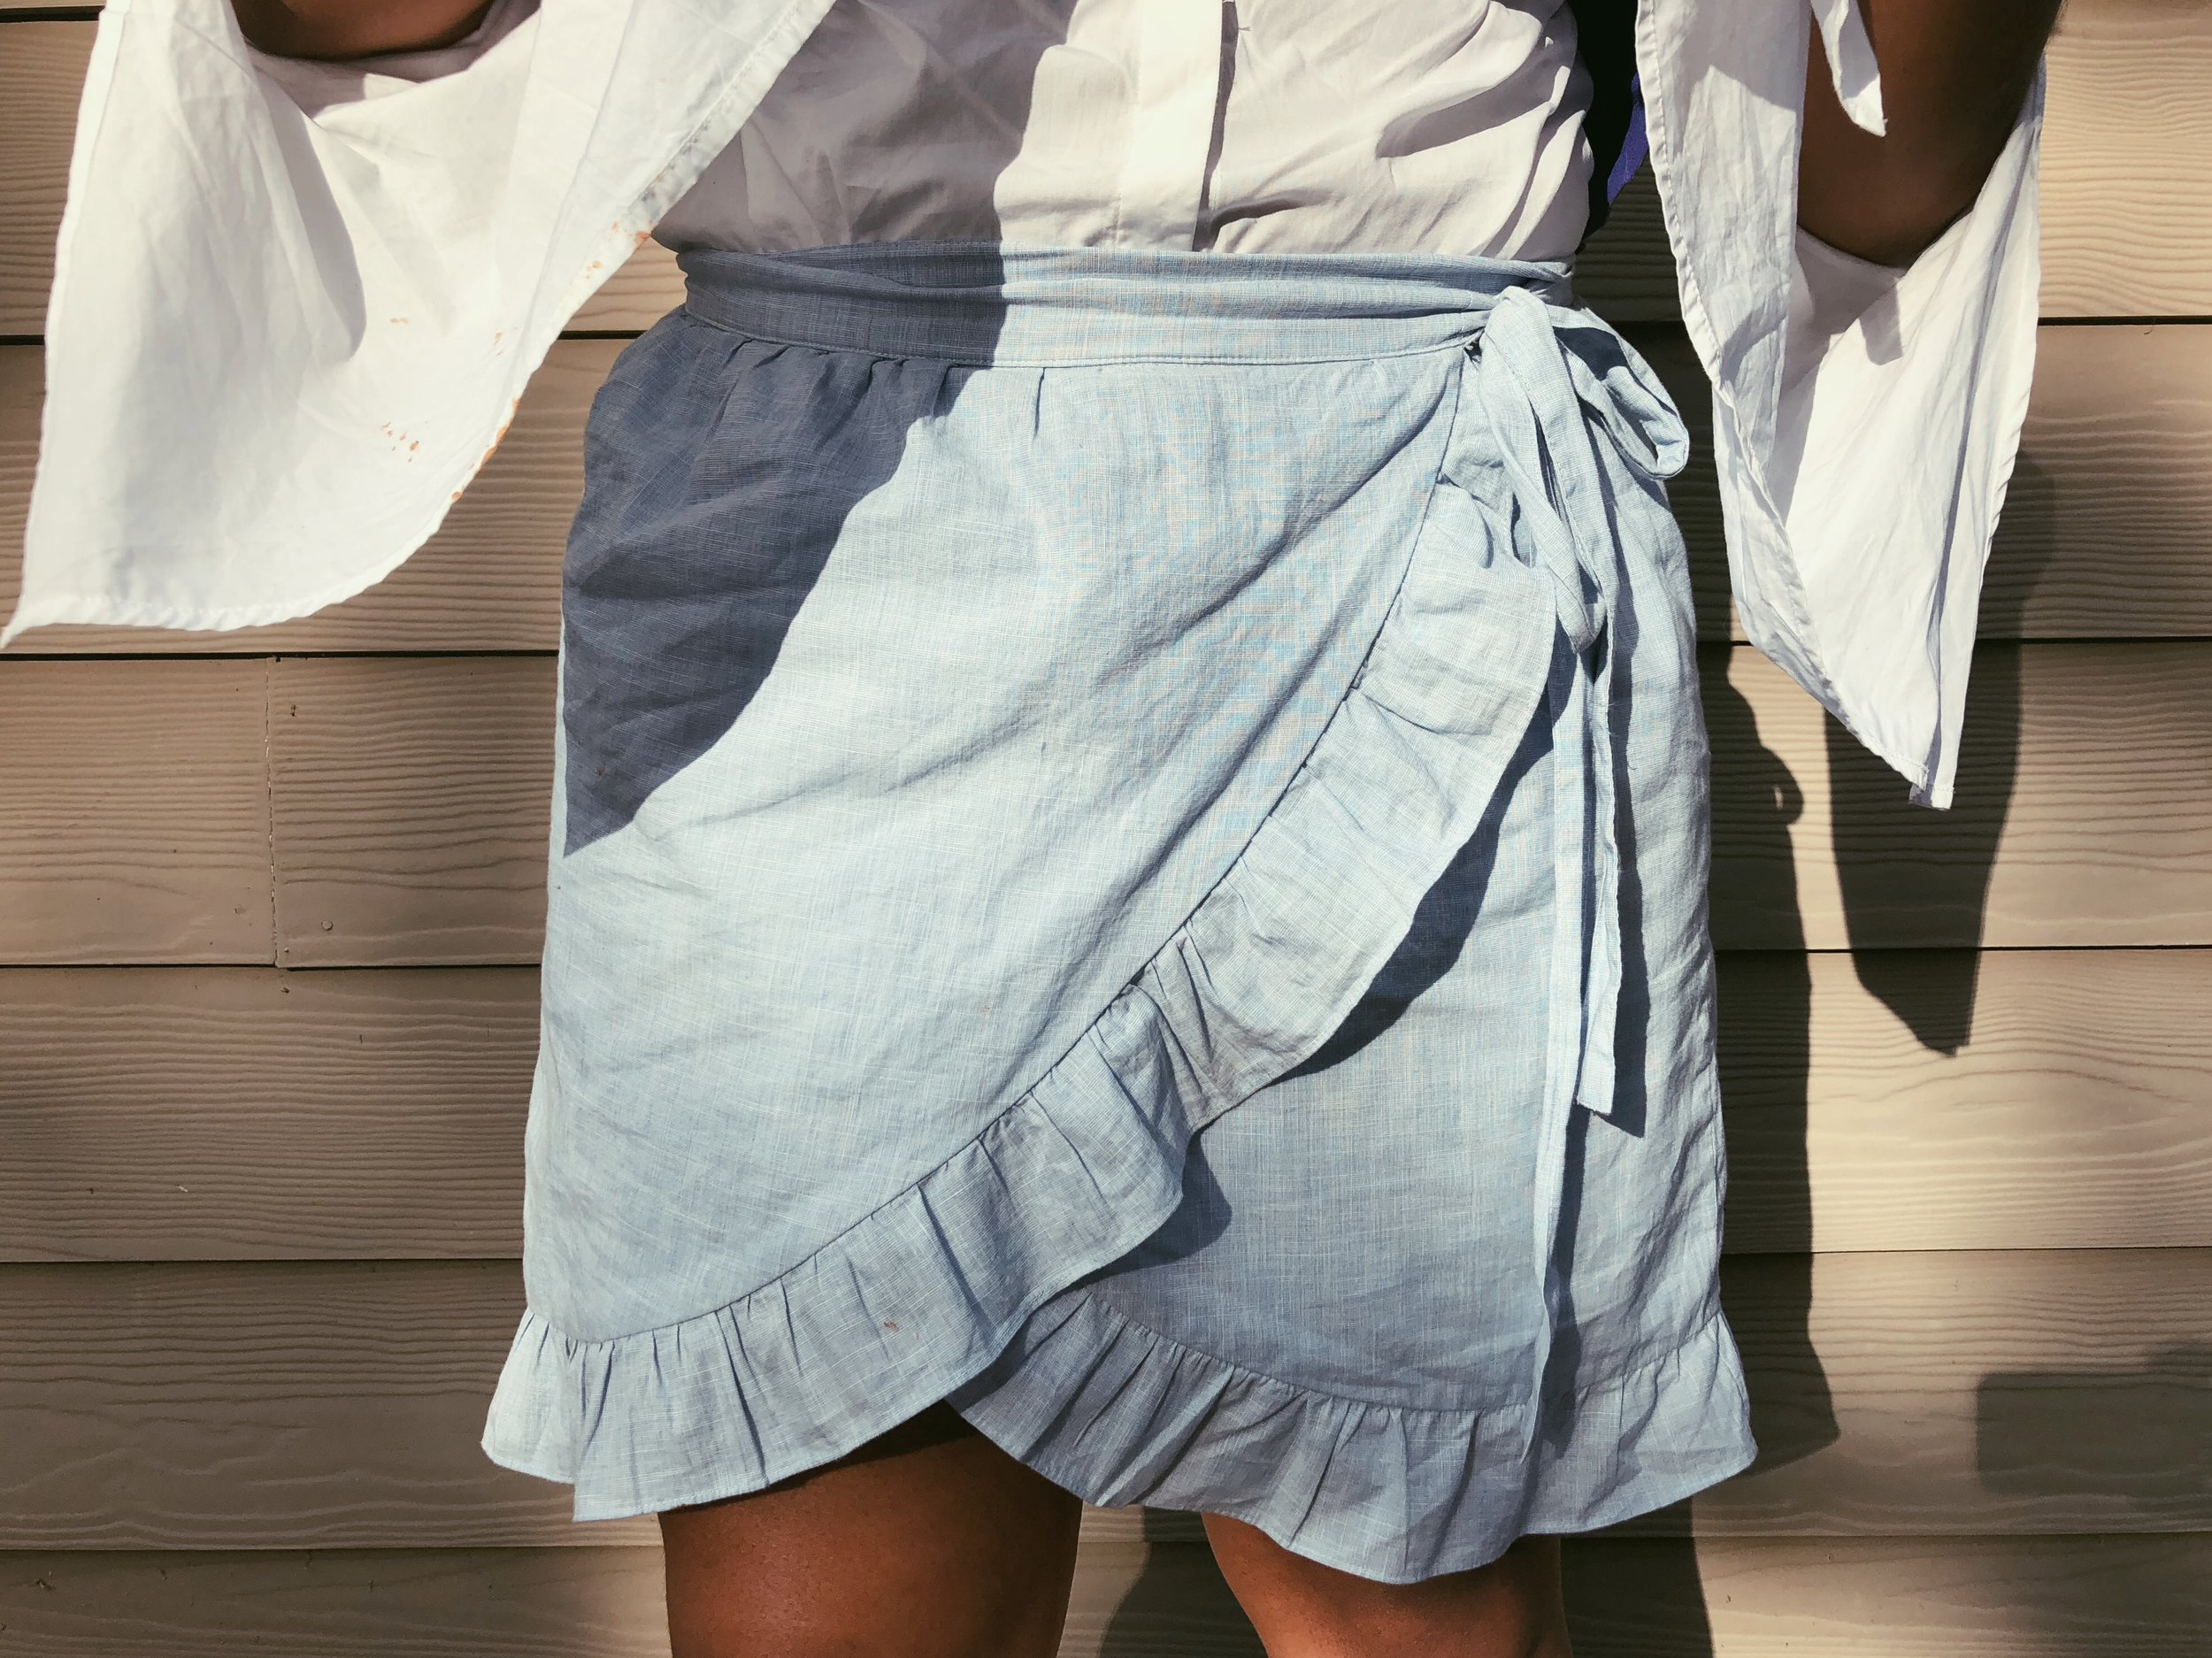 Skirt by Madewell